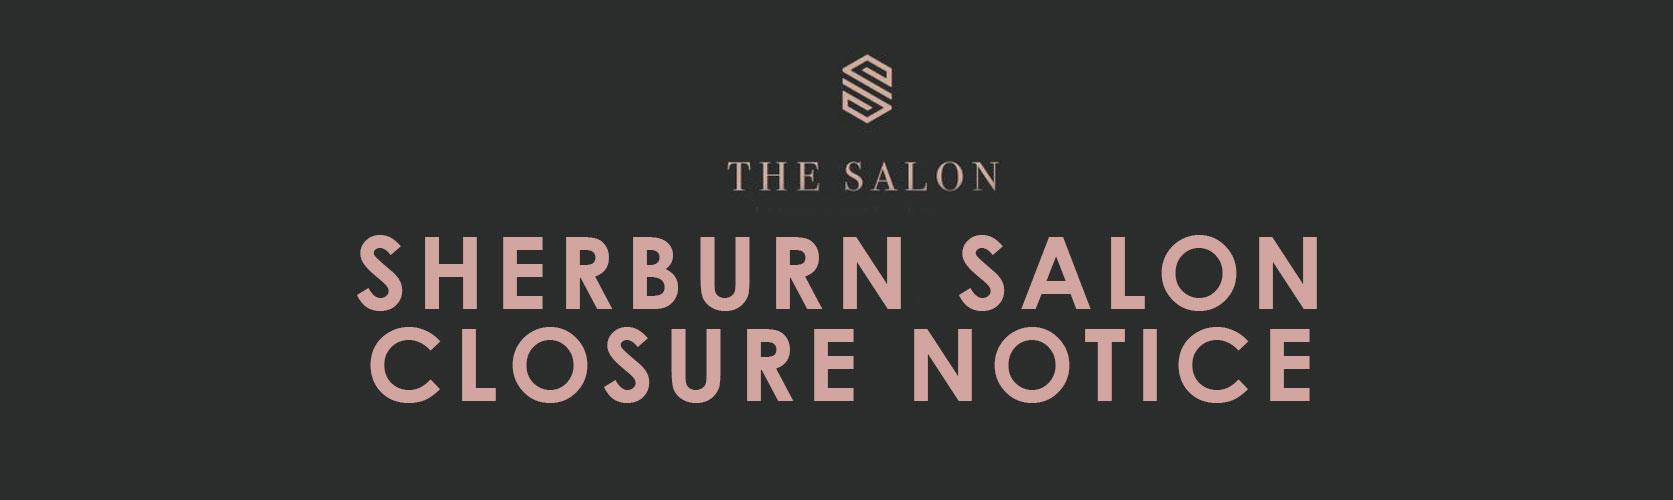 Sherburn Salon Closure Notice durham hair salons